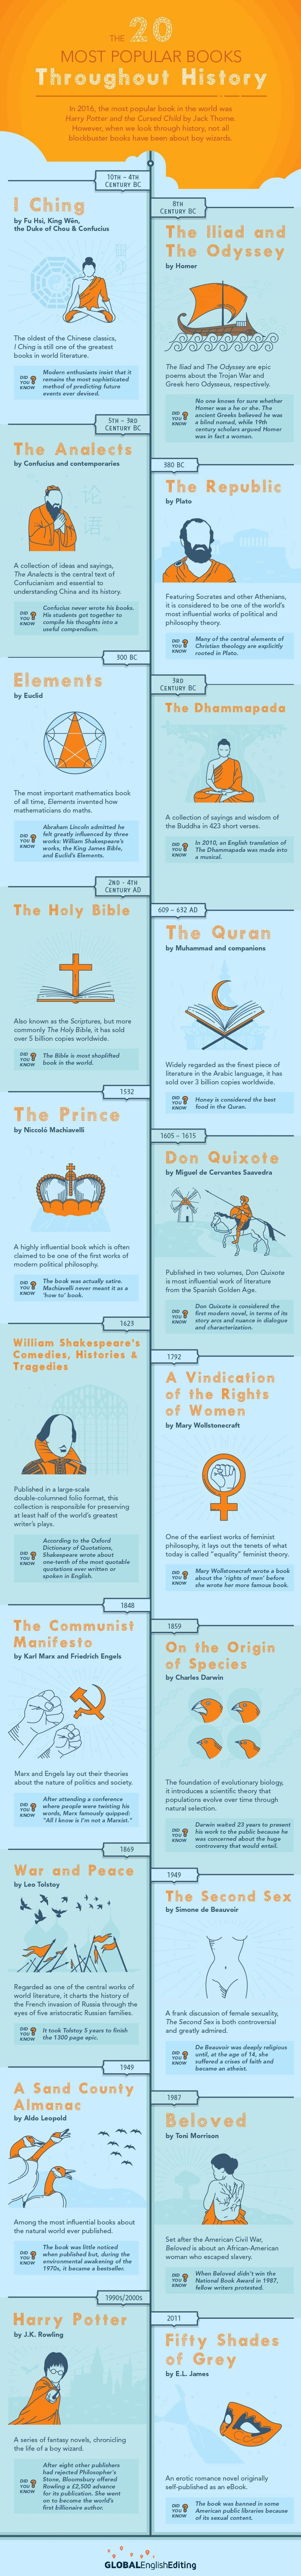 The 20 Most Popular Books Throughout History